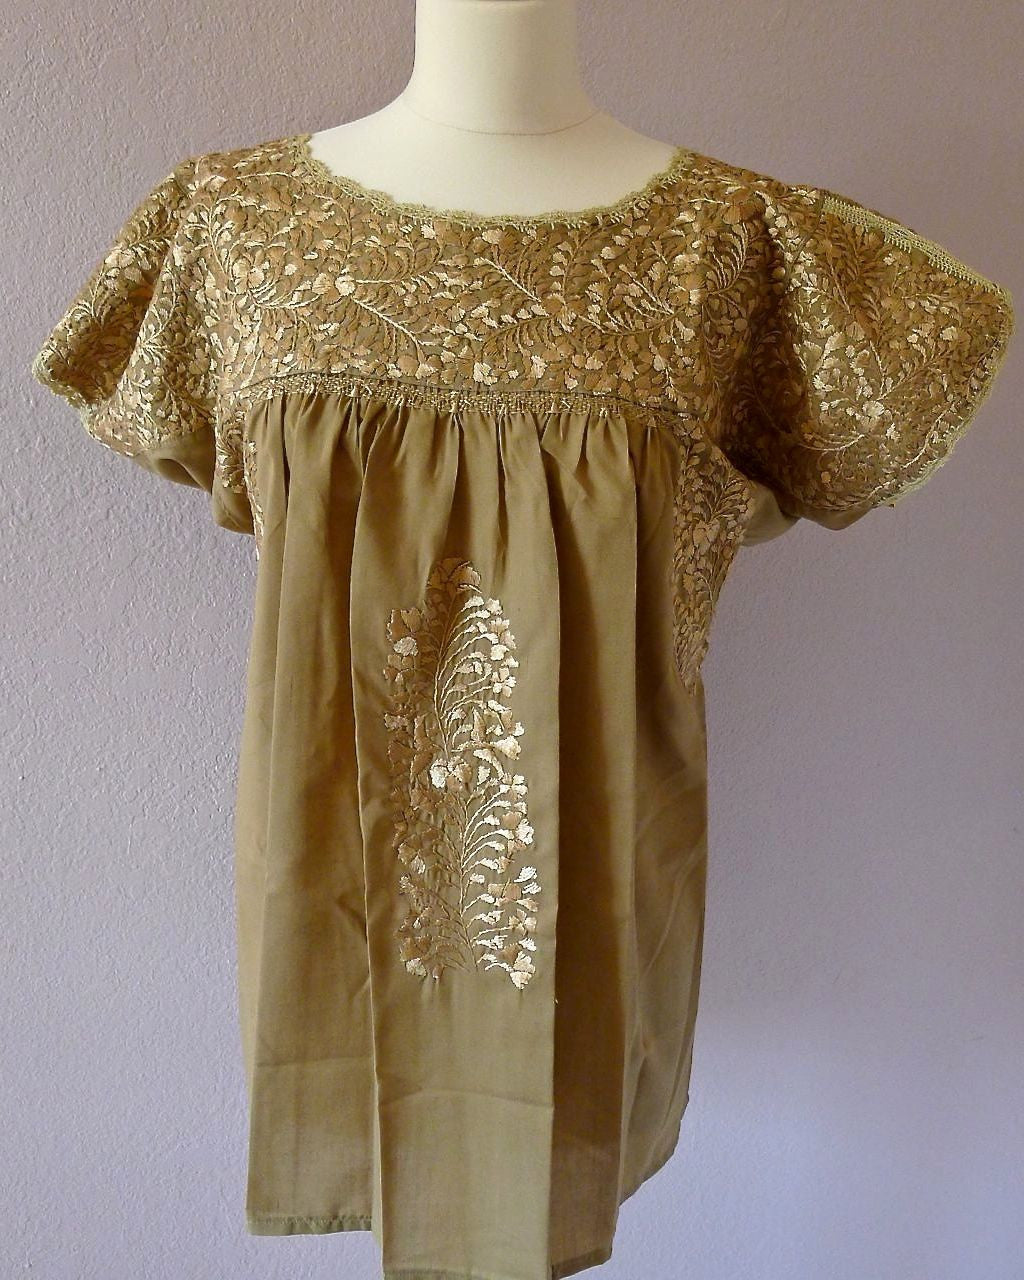 Embroidered Mexican Wedding Dress Blouse - beige/beige sml/med ...